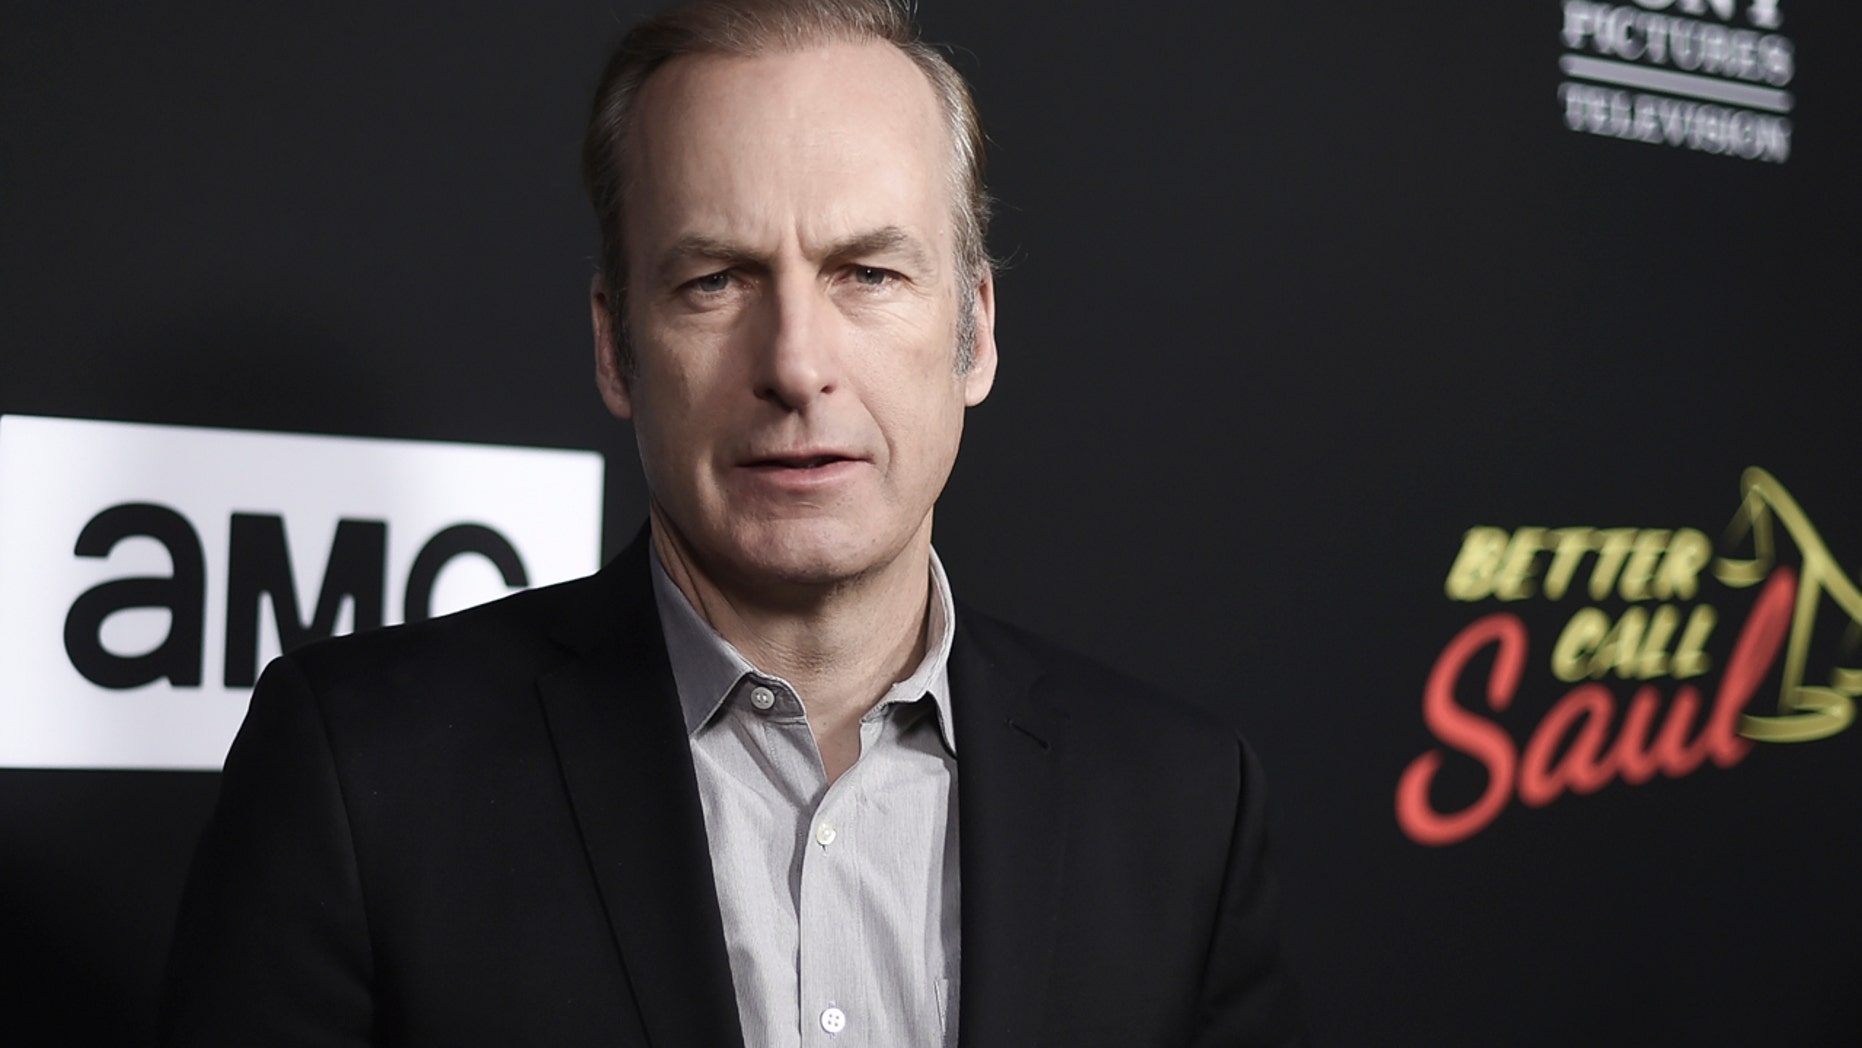 """""""Better Call Saul's"""" Bob Odenkirk attends the premiere of season 3 of the show on Tuesday, March 28, 2017, in Culver City, Calif."""